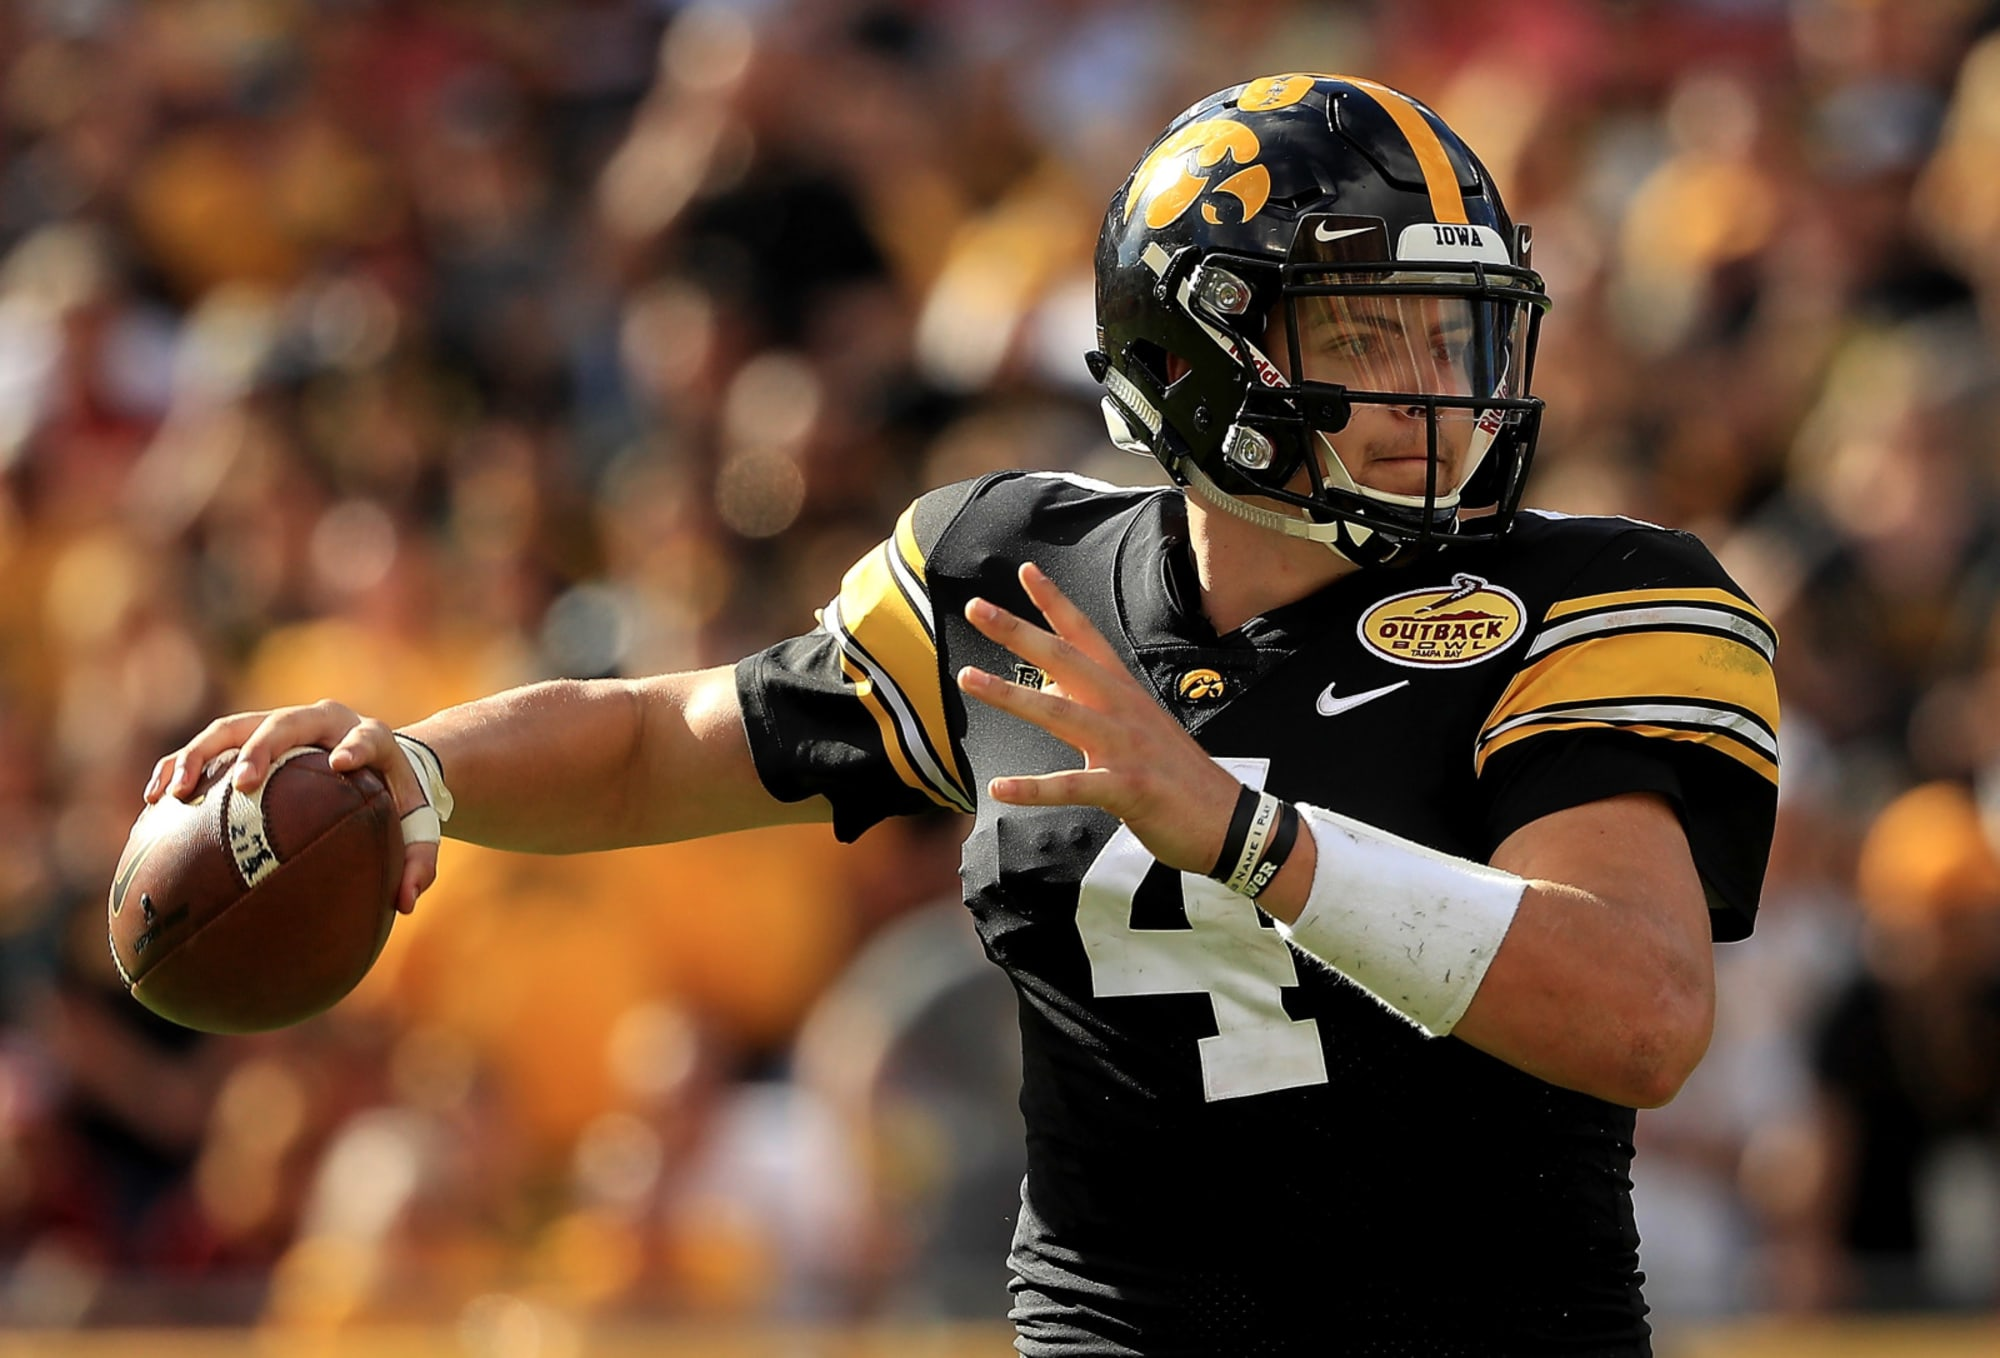 Iowa Football Schedule 2019 Game By Game Predictions